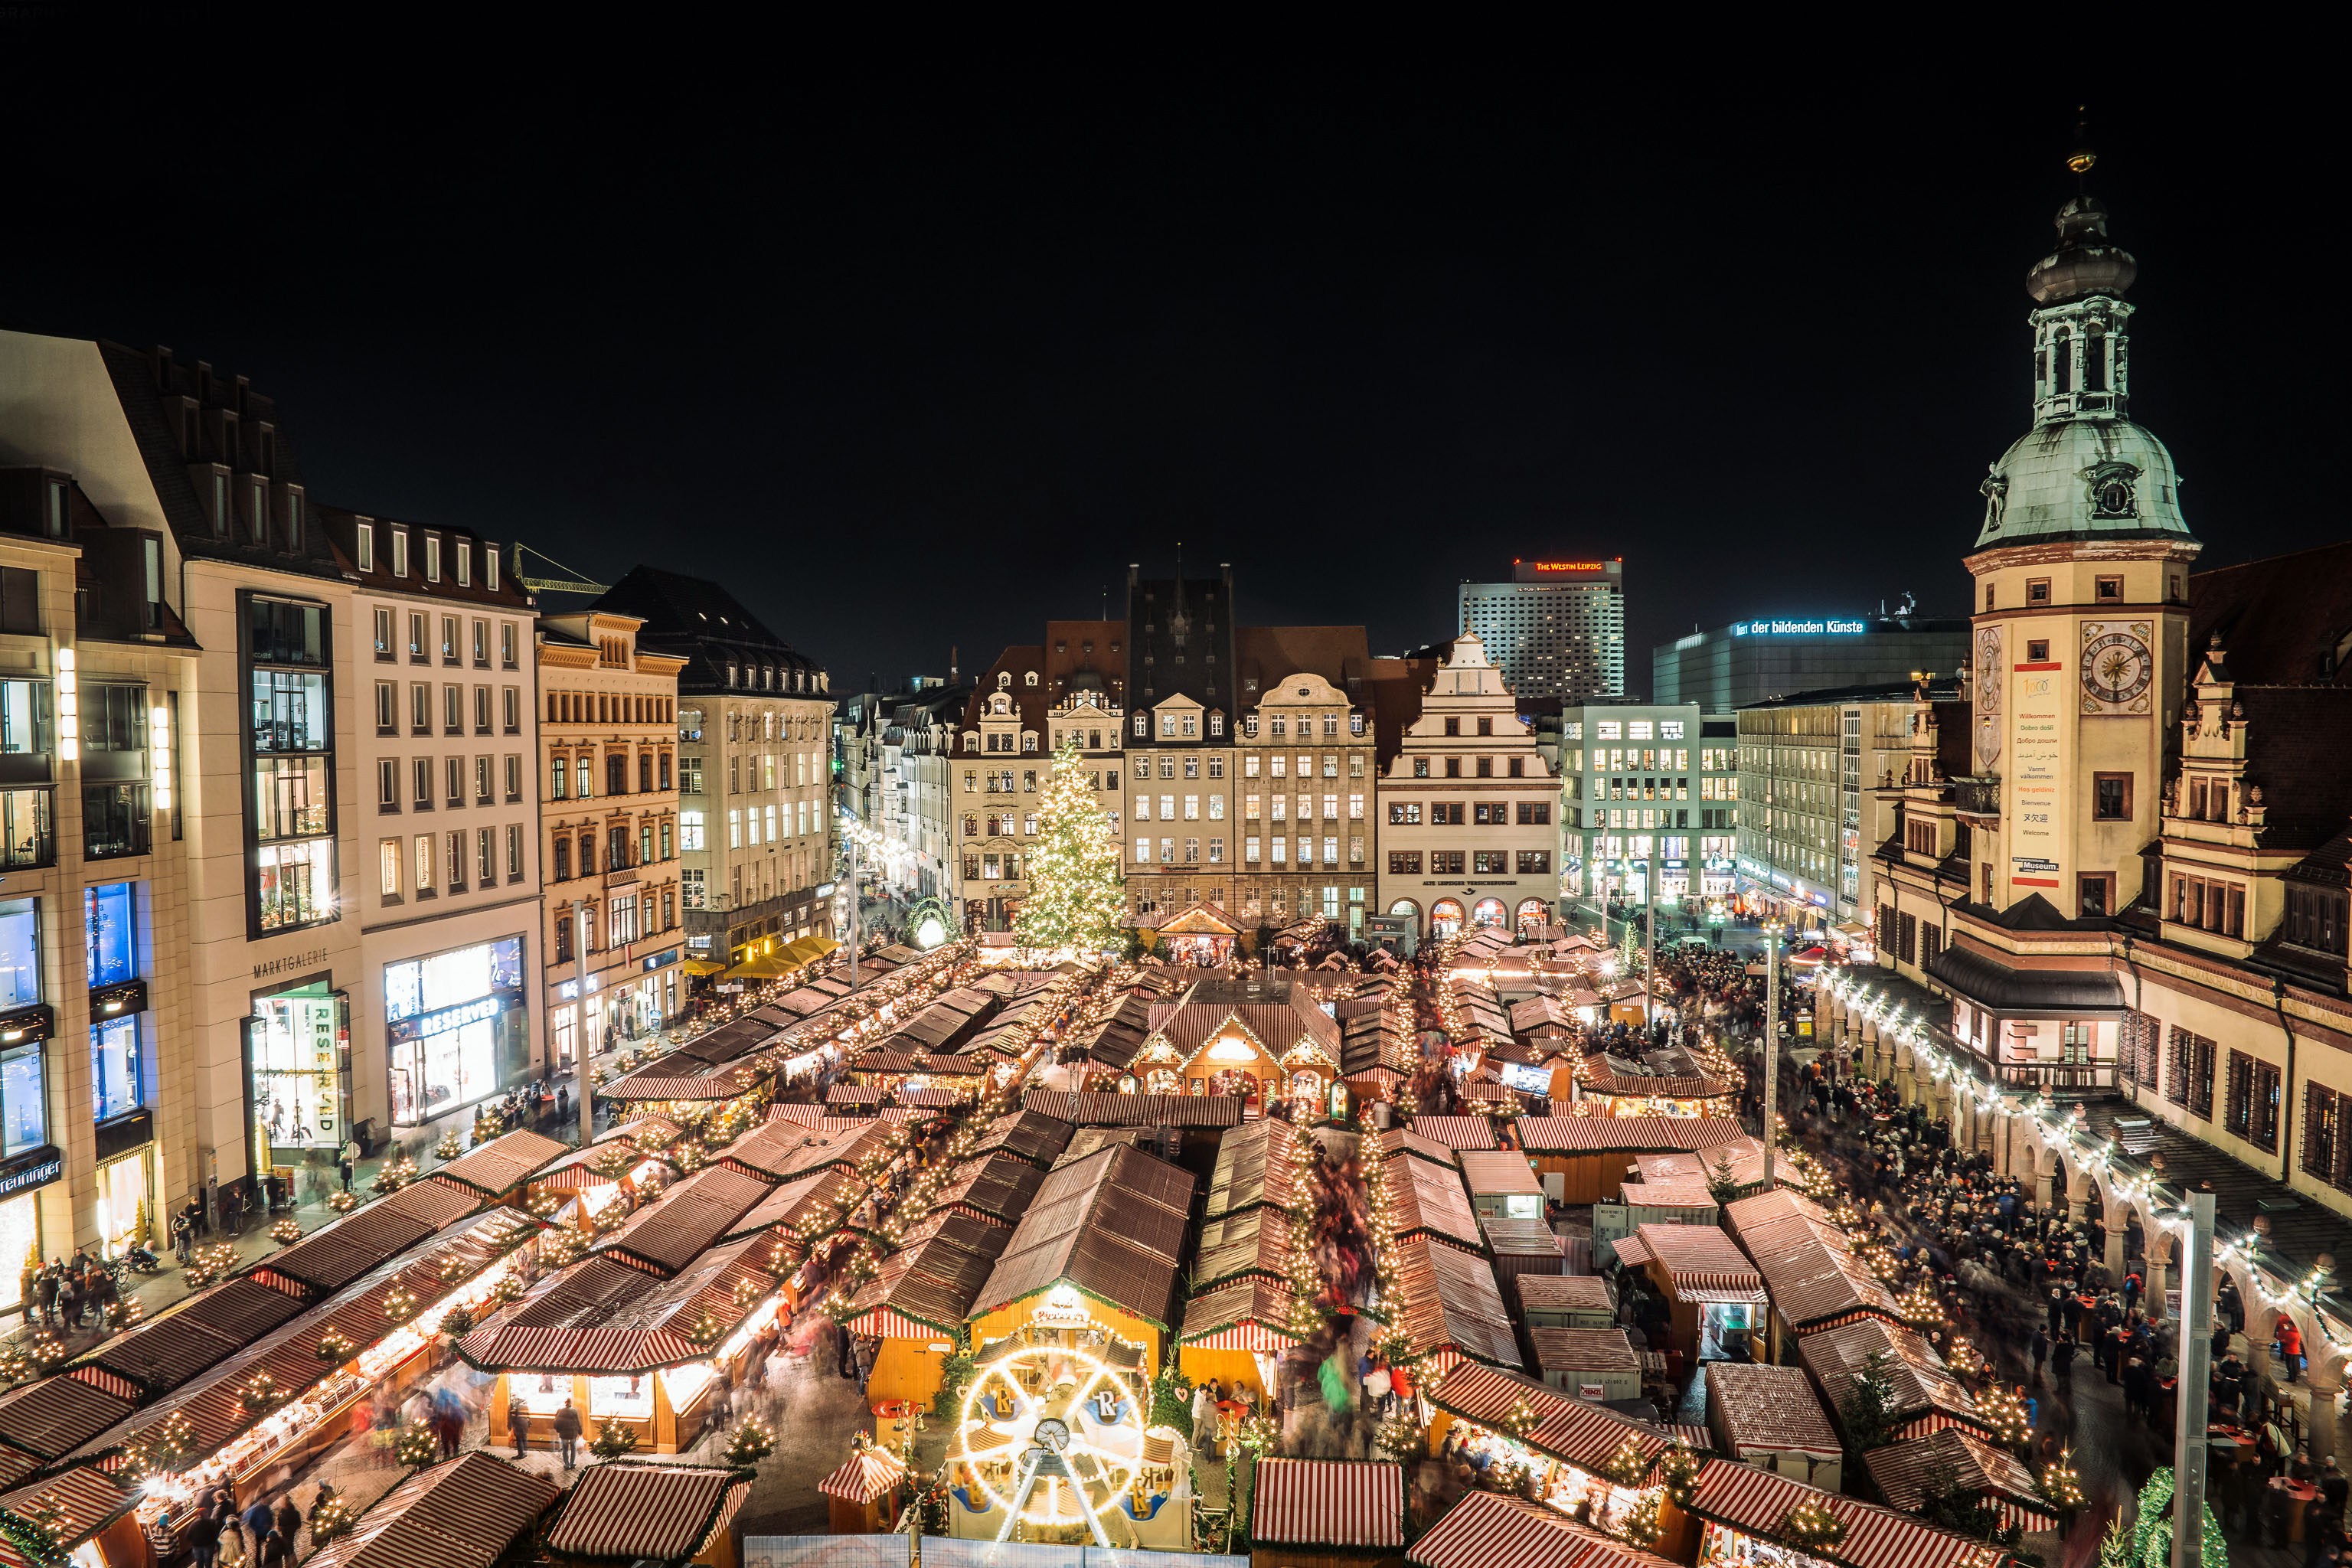 Christmas market in Leipzig today. Quite sure the market place did not look like this in Bach's time, but no doubt there was also a very special atmosphere. Enjoy the Christmastide!